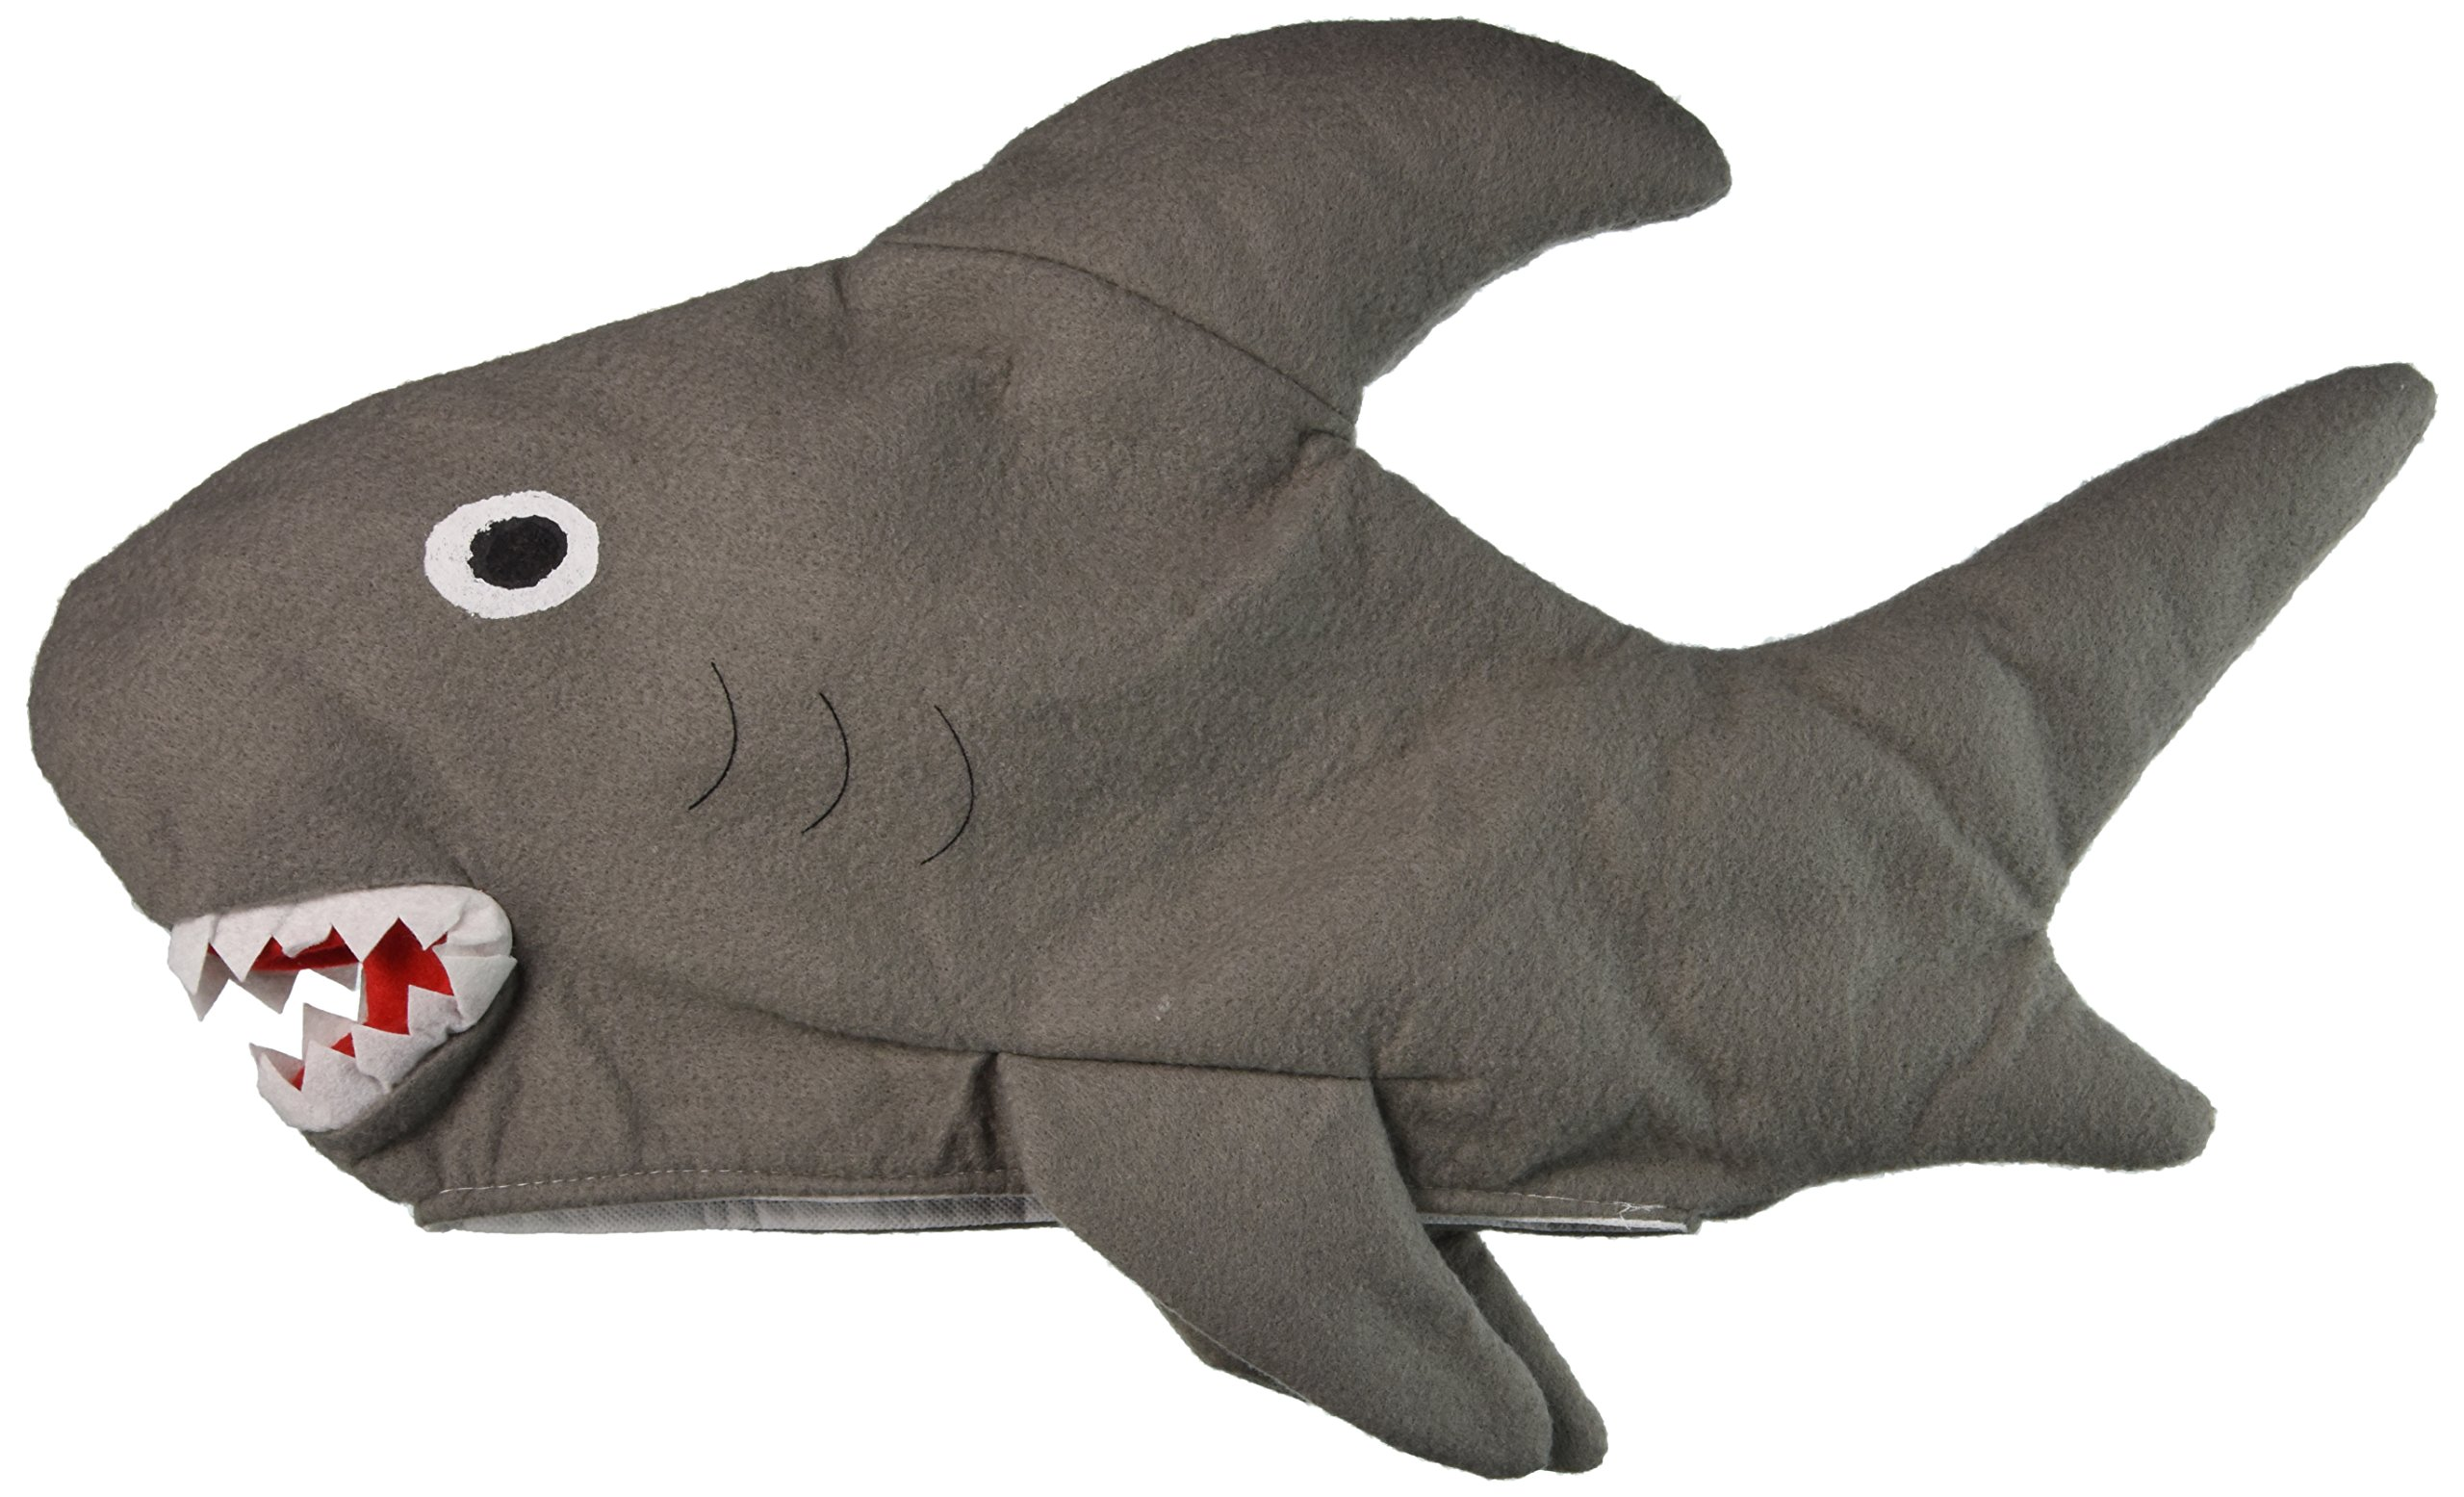 US Toy One Shark Theme Plush Hat, 24'' by U.S. Toy